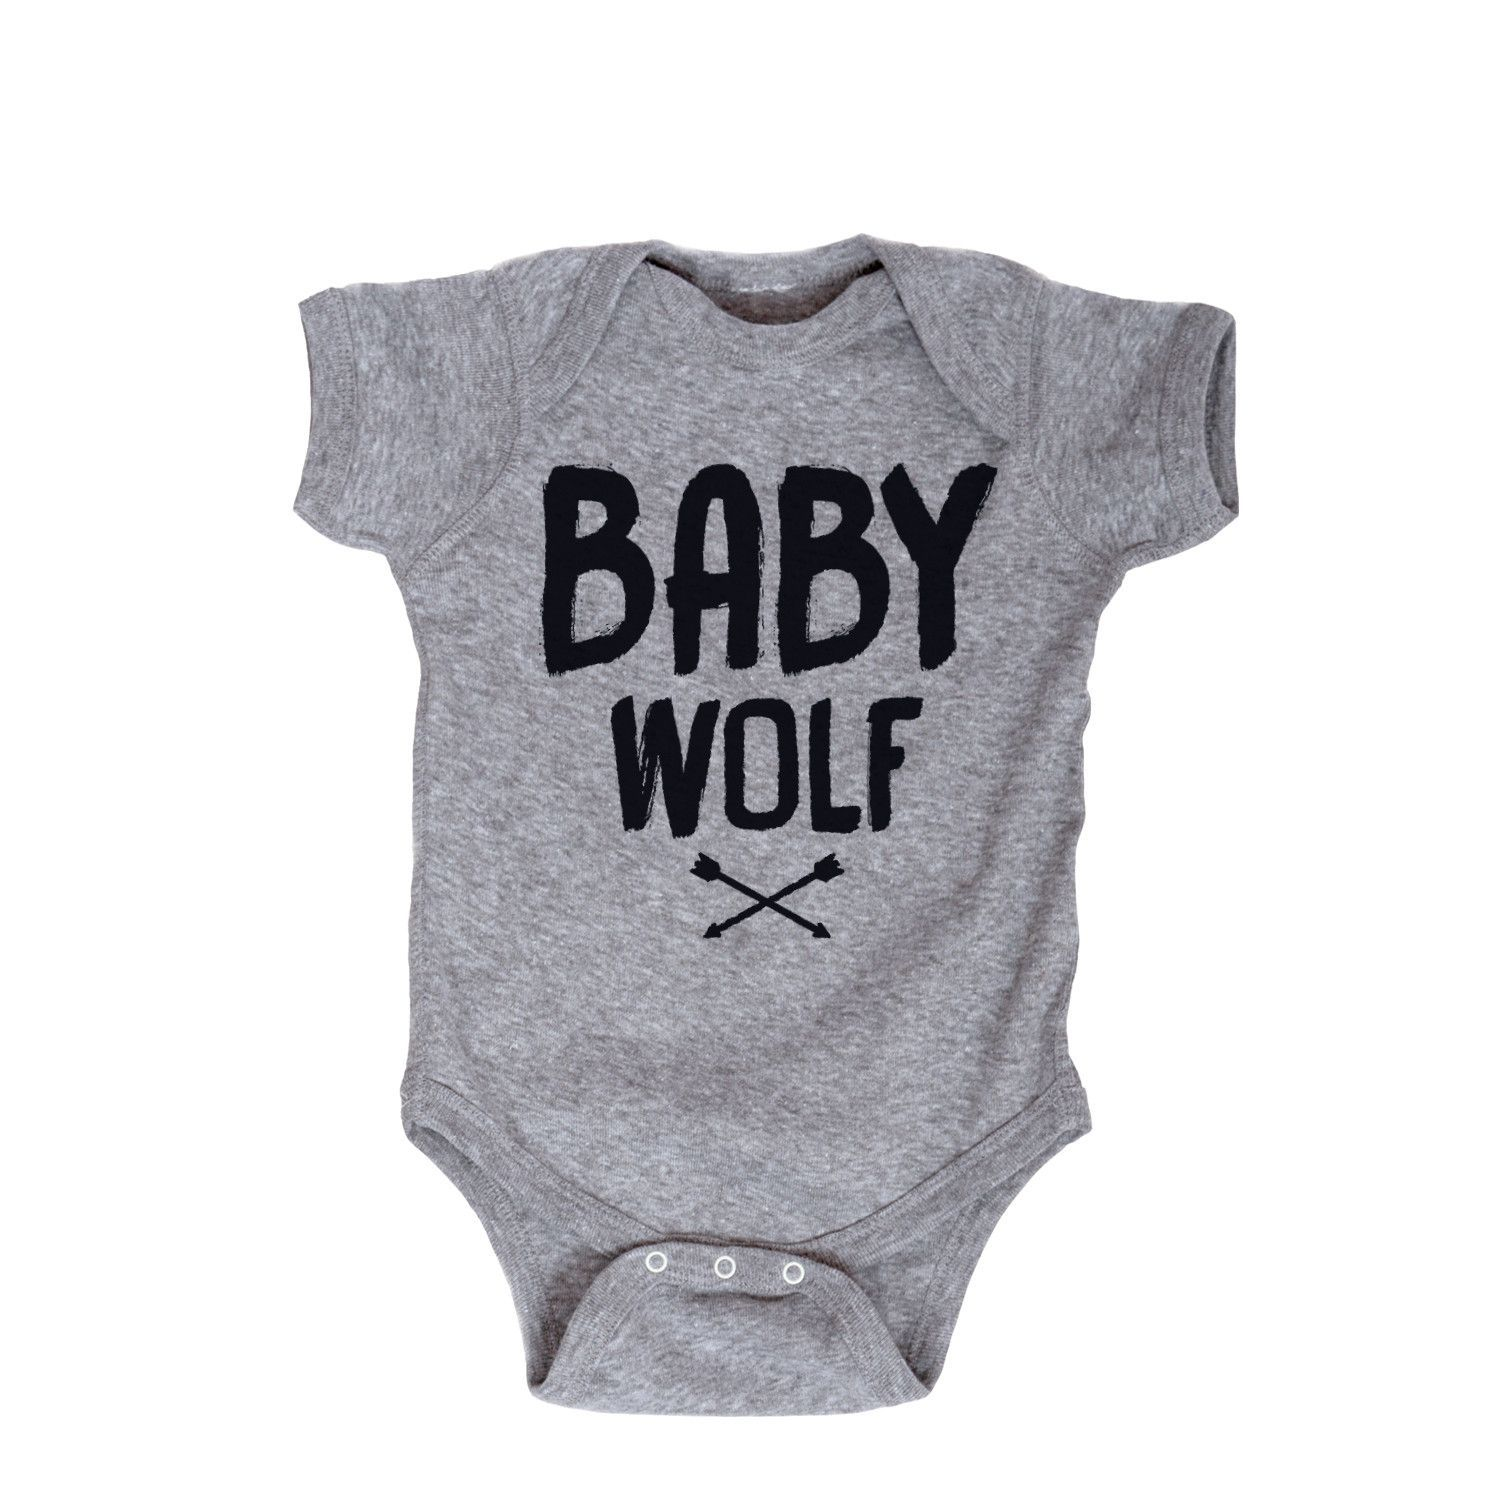 Baby Baby Long Sleeve Bodysuit Word Gray Black Snap Closure Toddler Baby Girls Boys Layette Romper Outfits Baby Boys